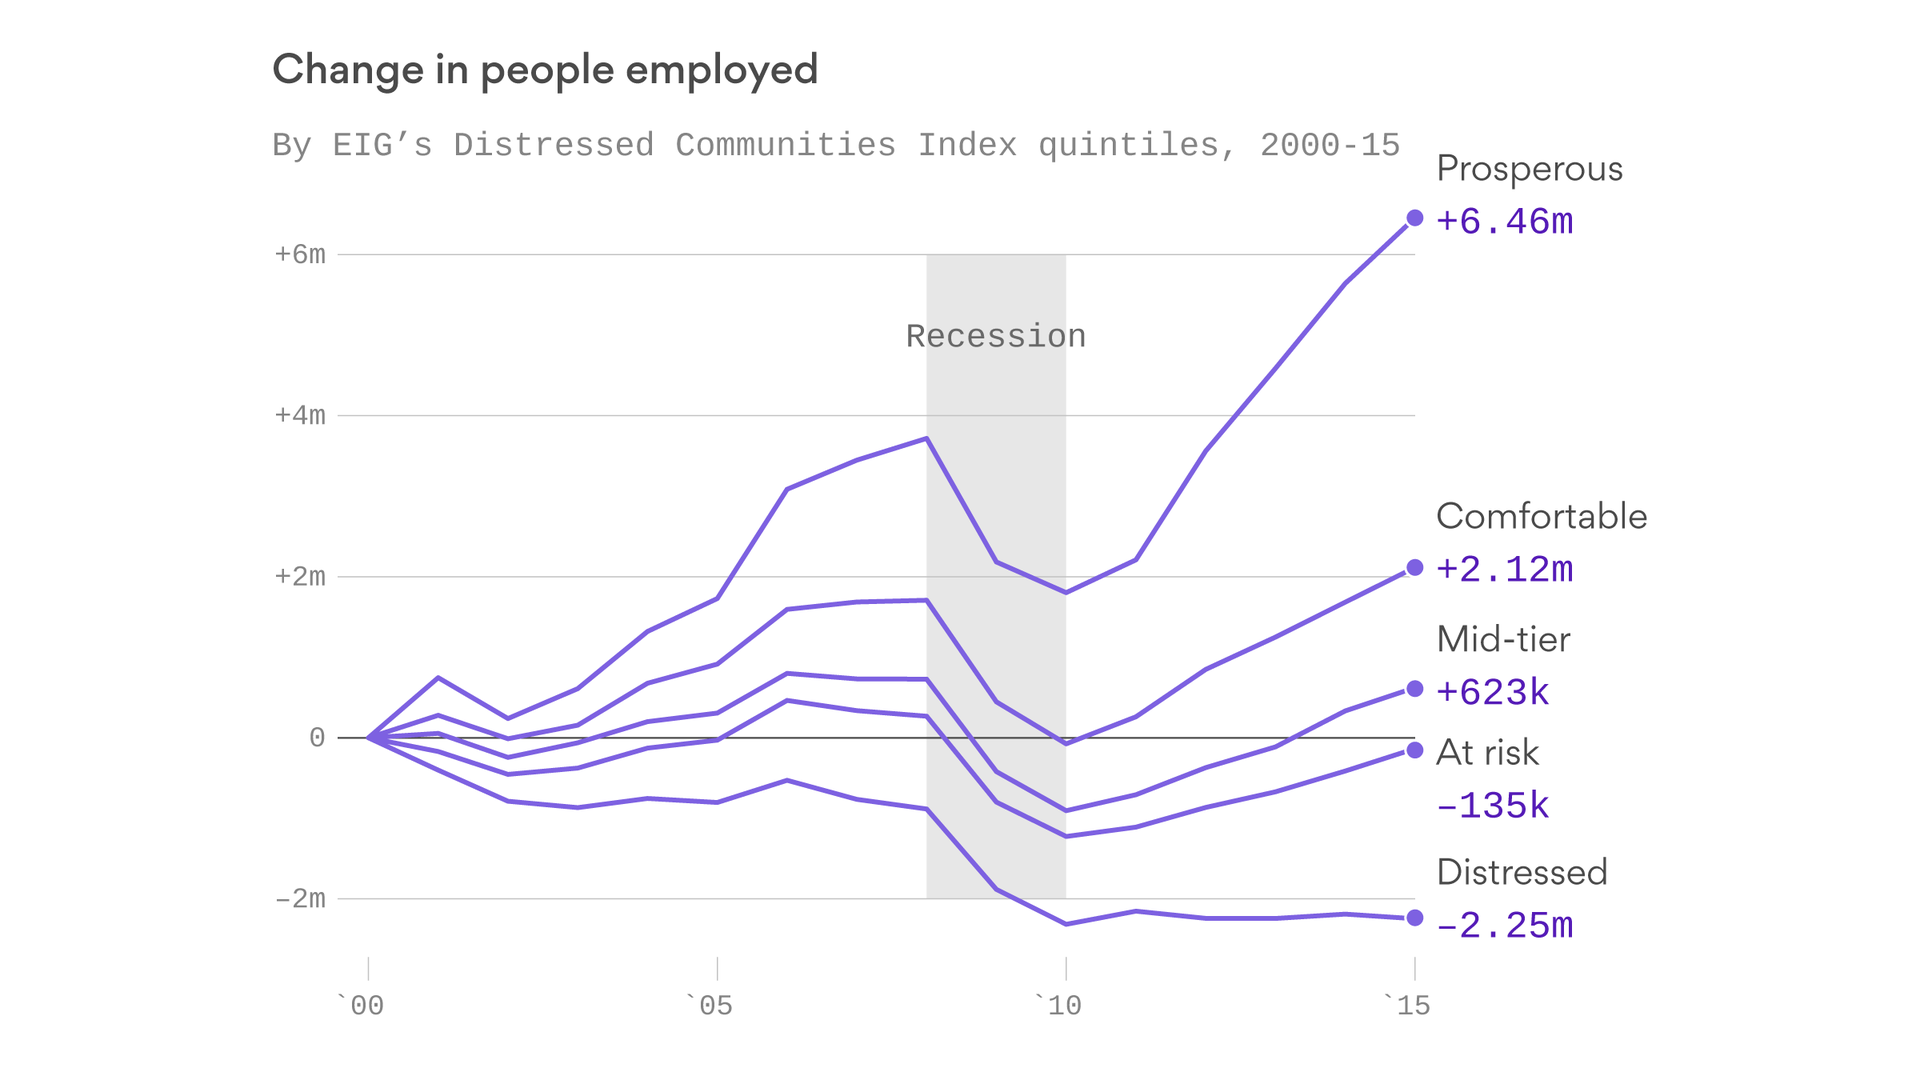 The wildly uneven recovery from the Great Recession